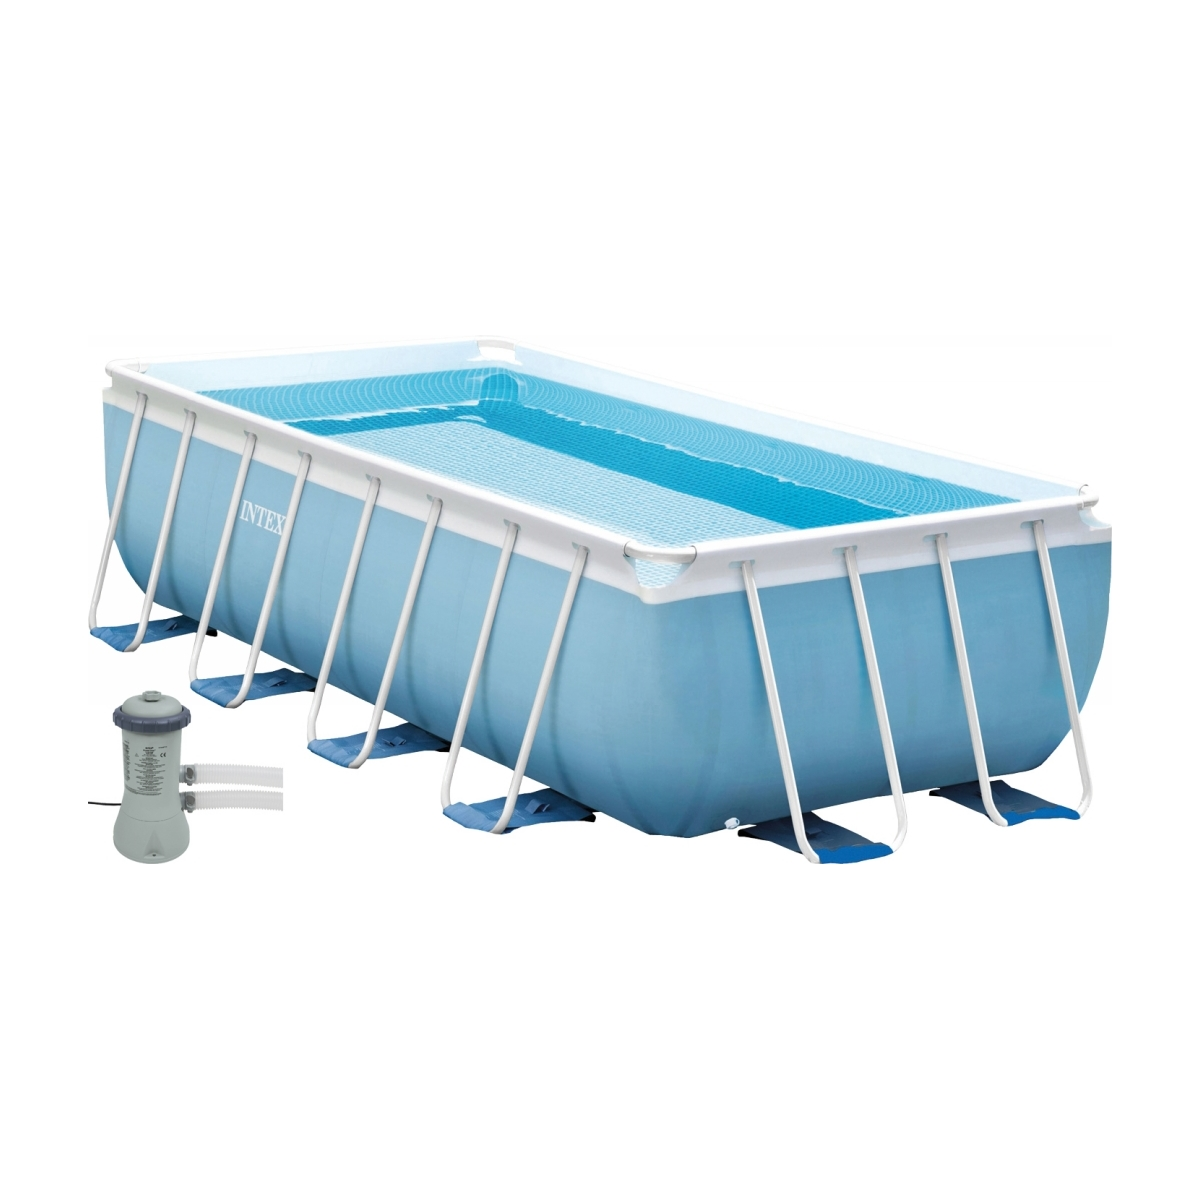 Piscina fuori terra prisma metal frame intex 300x175x80 cm for Offerte piscine intex